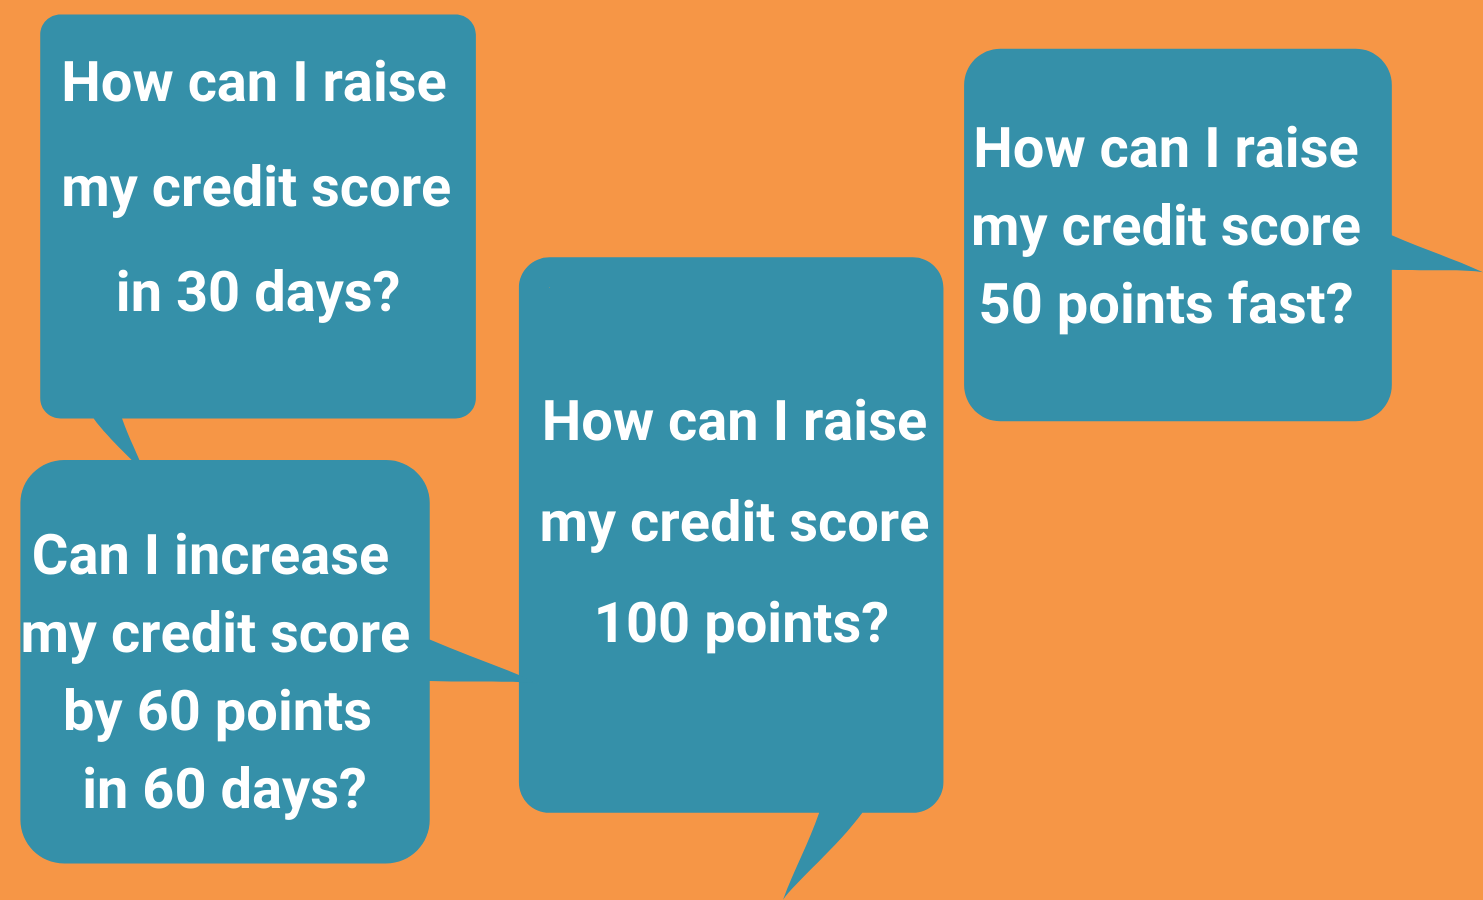 How can I raise my credit score in 30 days? How can I raise my credit score 100 points? How can I raise my credit score 50 points fast?